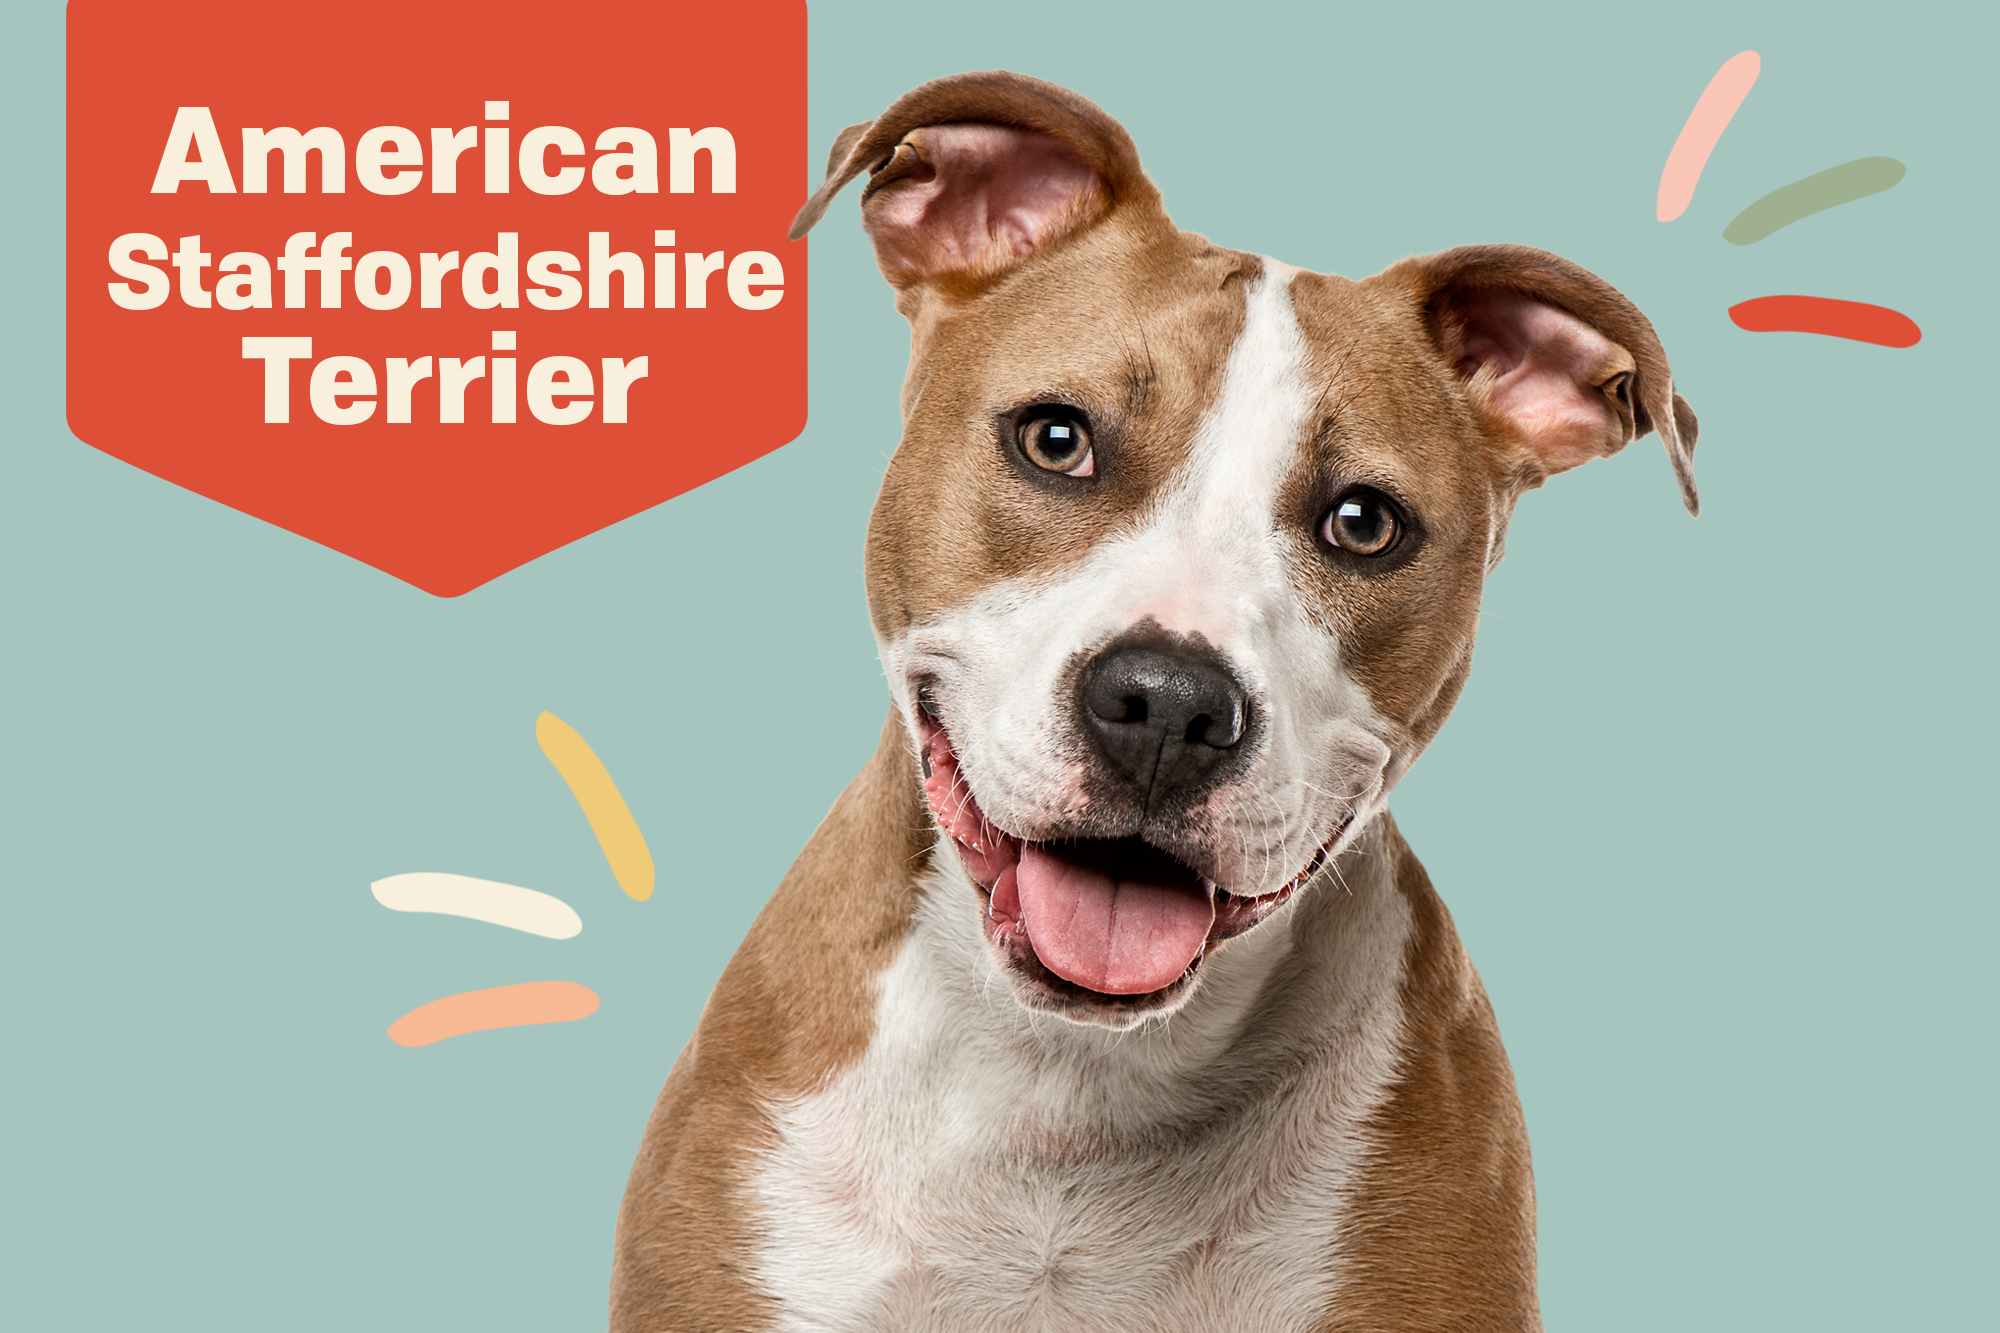 American Staffordshire Terrier Breed Photo